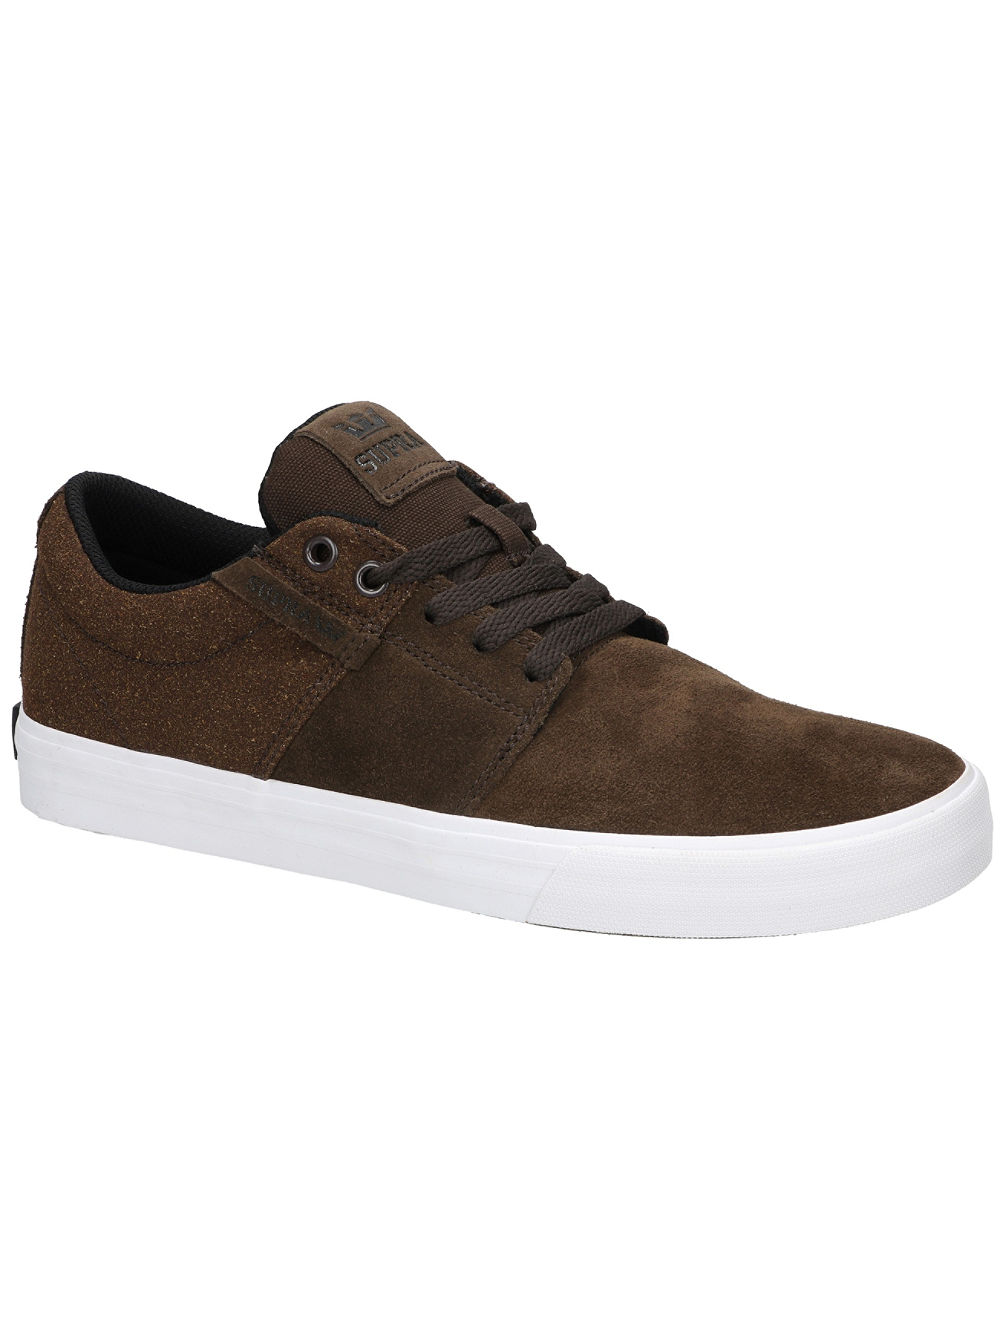 Stacks Vulc II Skate Shoes